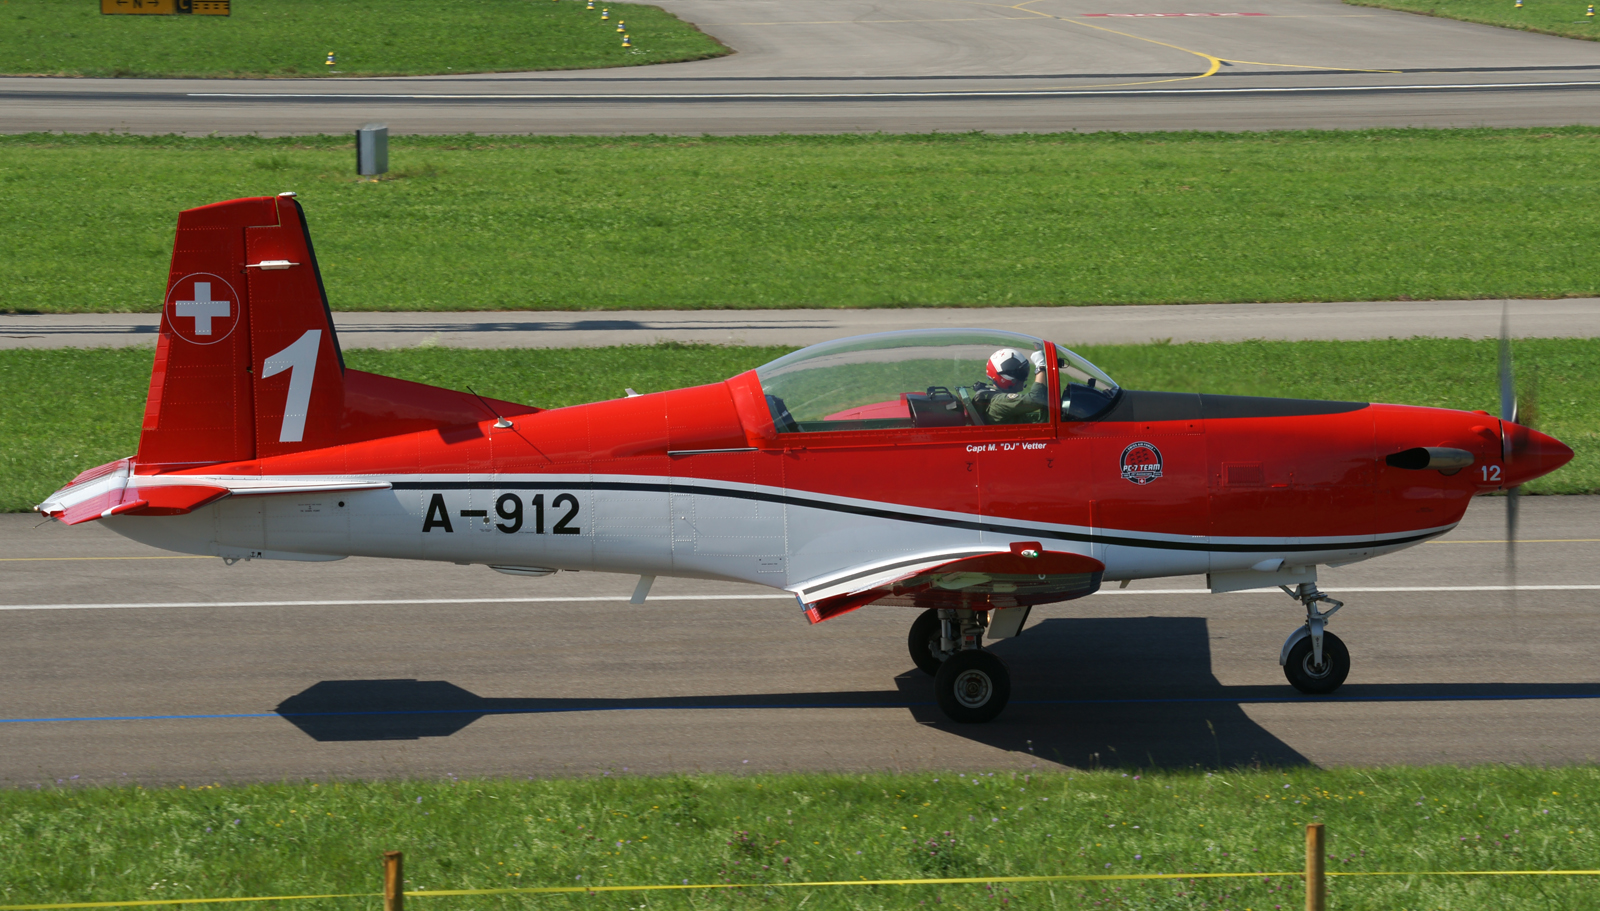 Pilatus PC-7 A-912/1 PC-7 Team Swiss Air Force